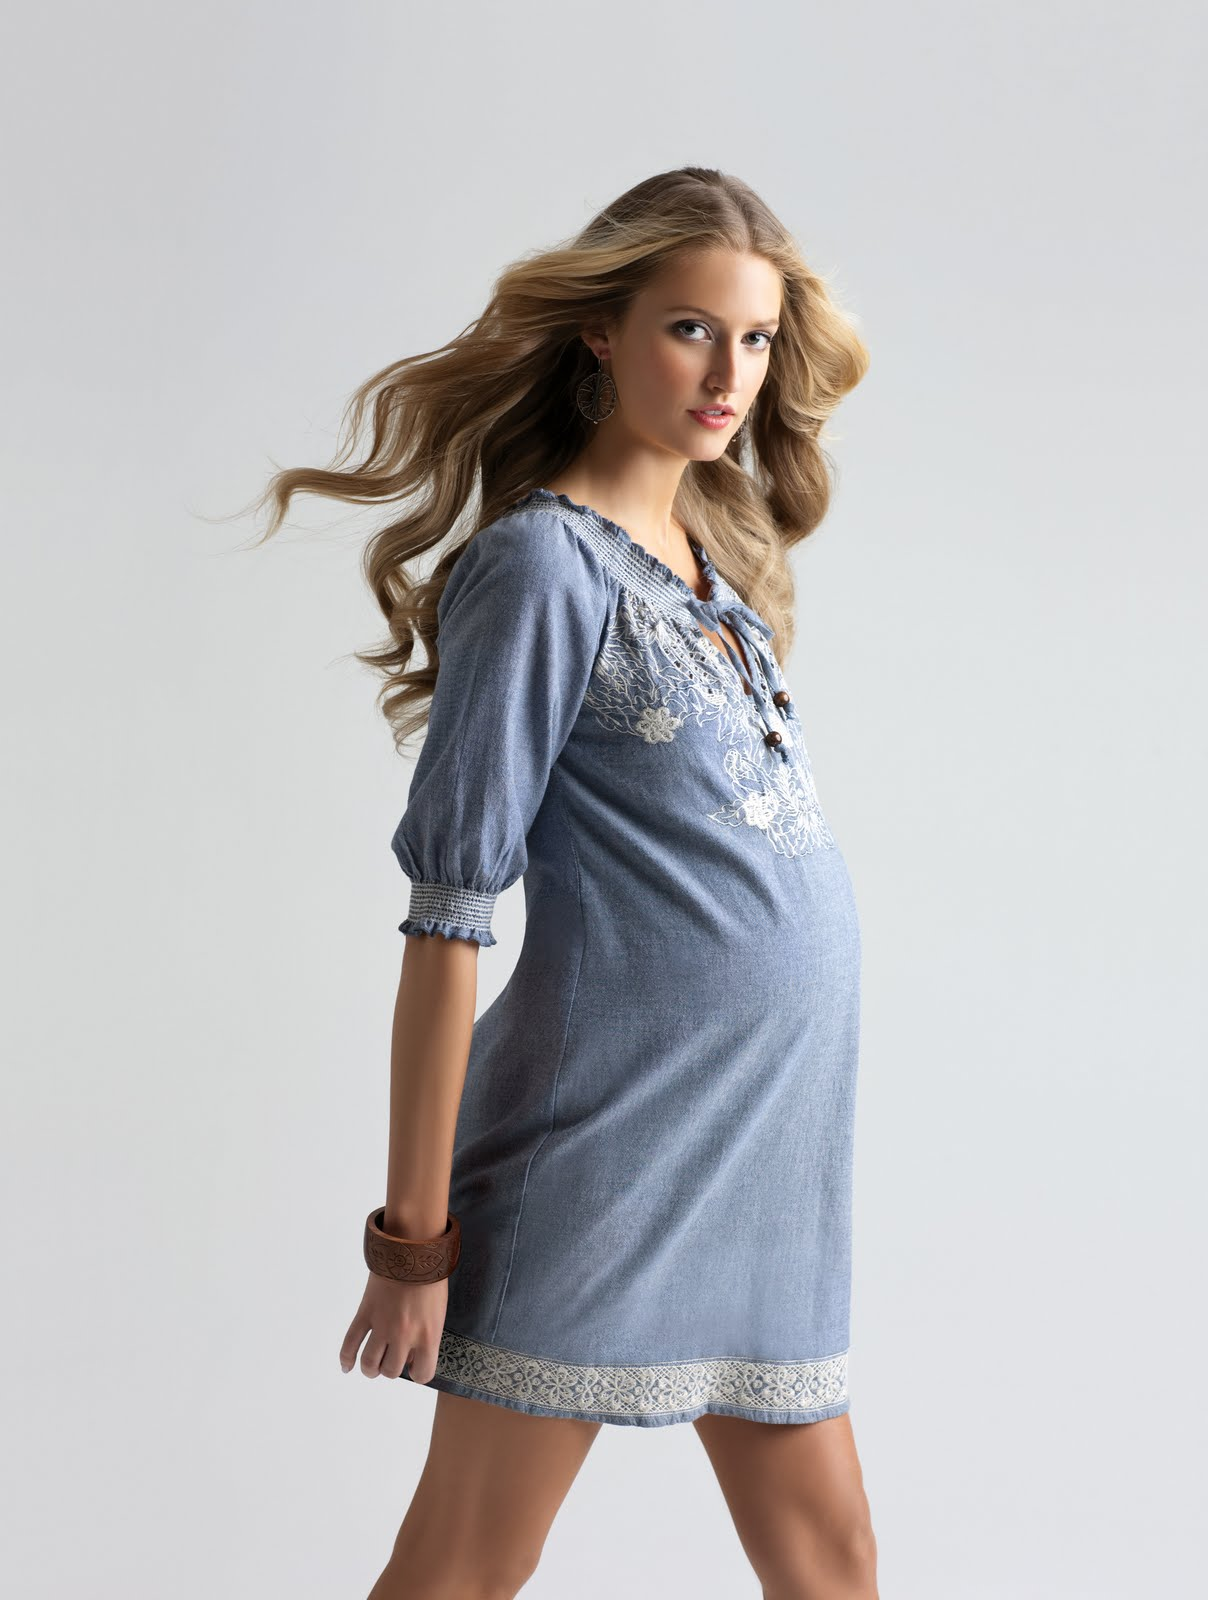 Pregnant Woman Clothing 70